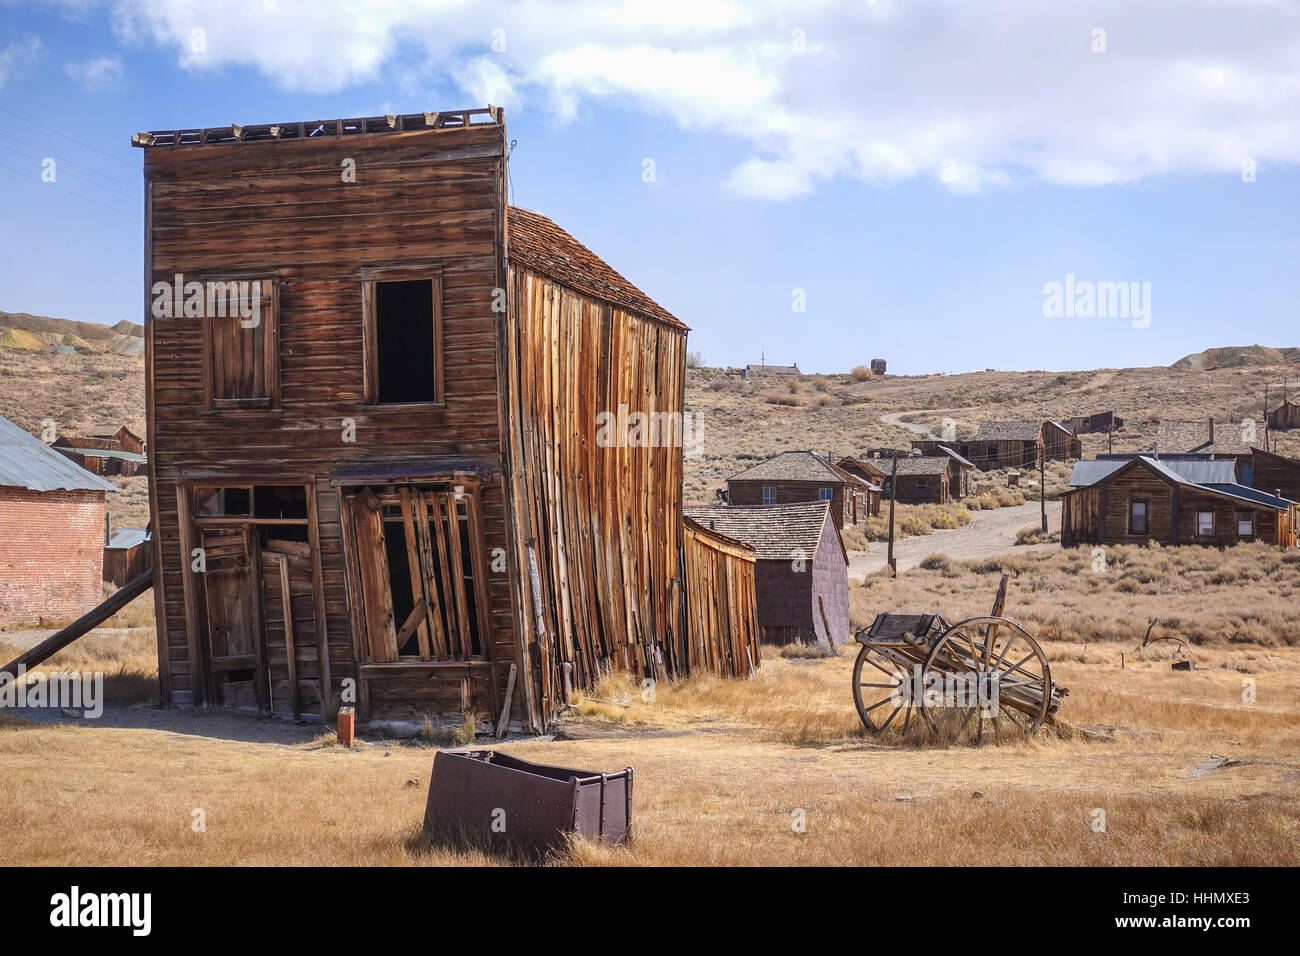 The ghost town of Bodie, California, is a landmark visited by people from all of the world. - Stock Image